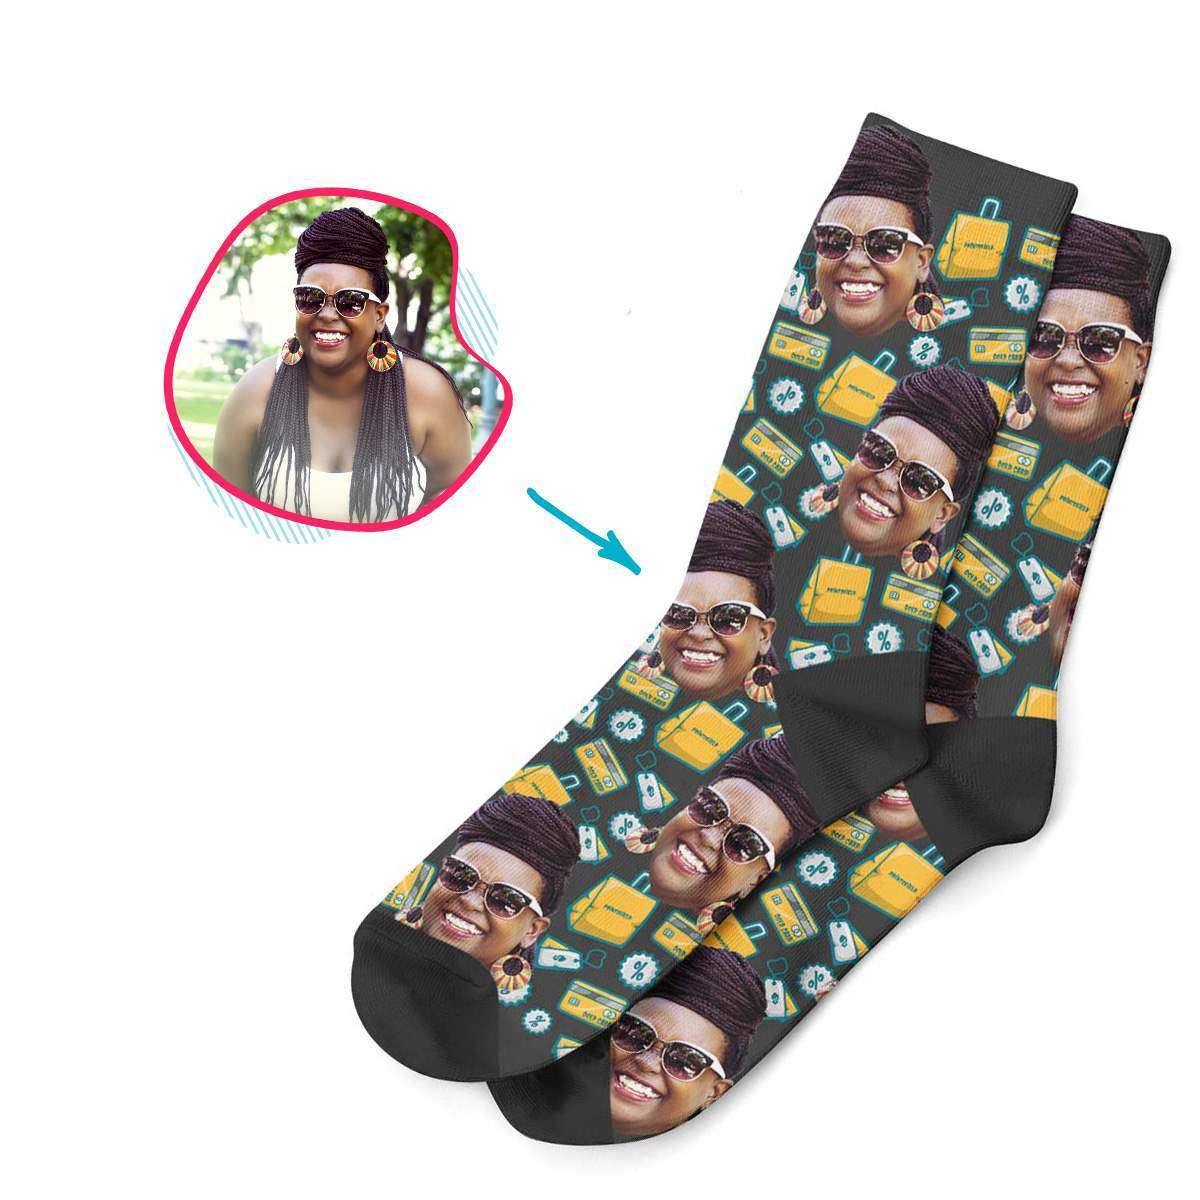 dark Shopping socks personalized with photo of face printed on them